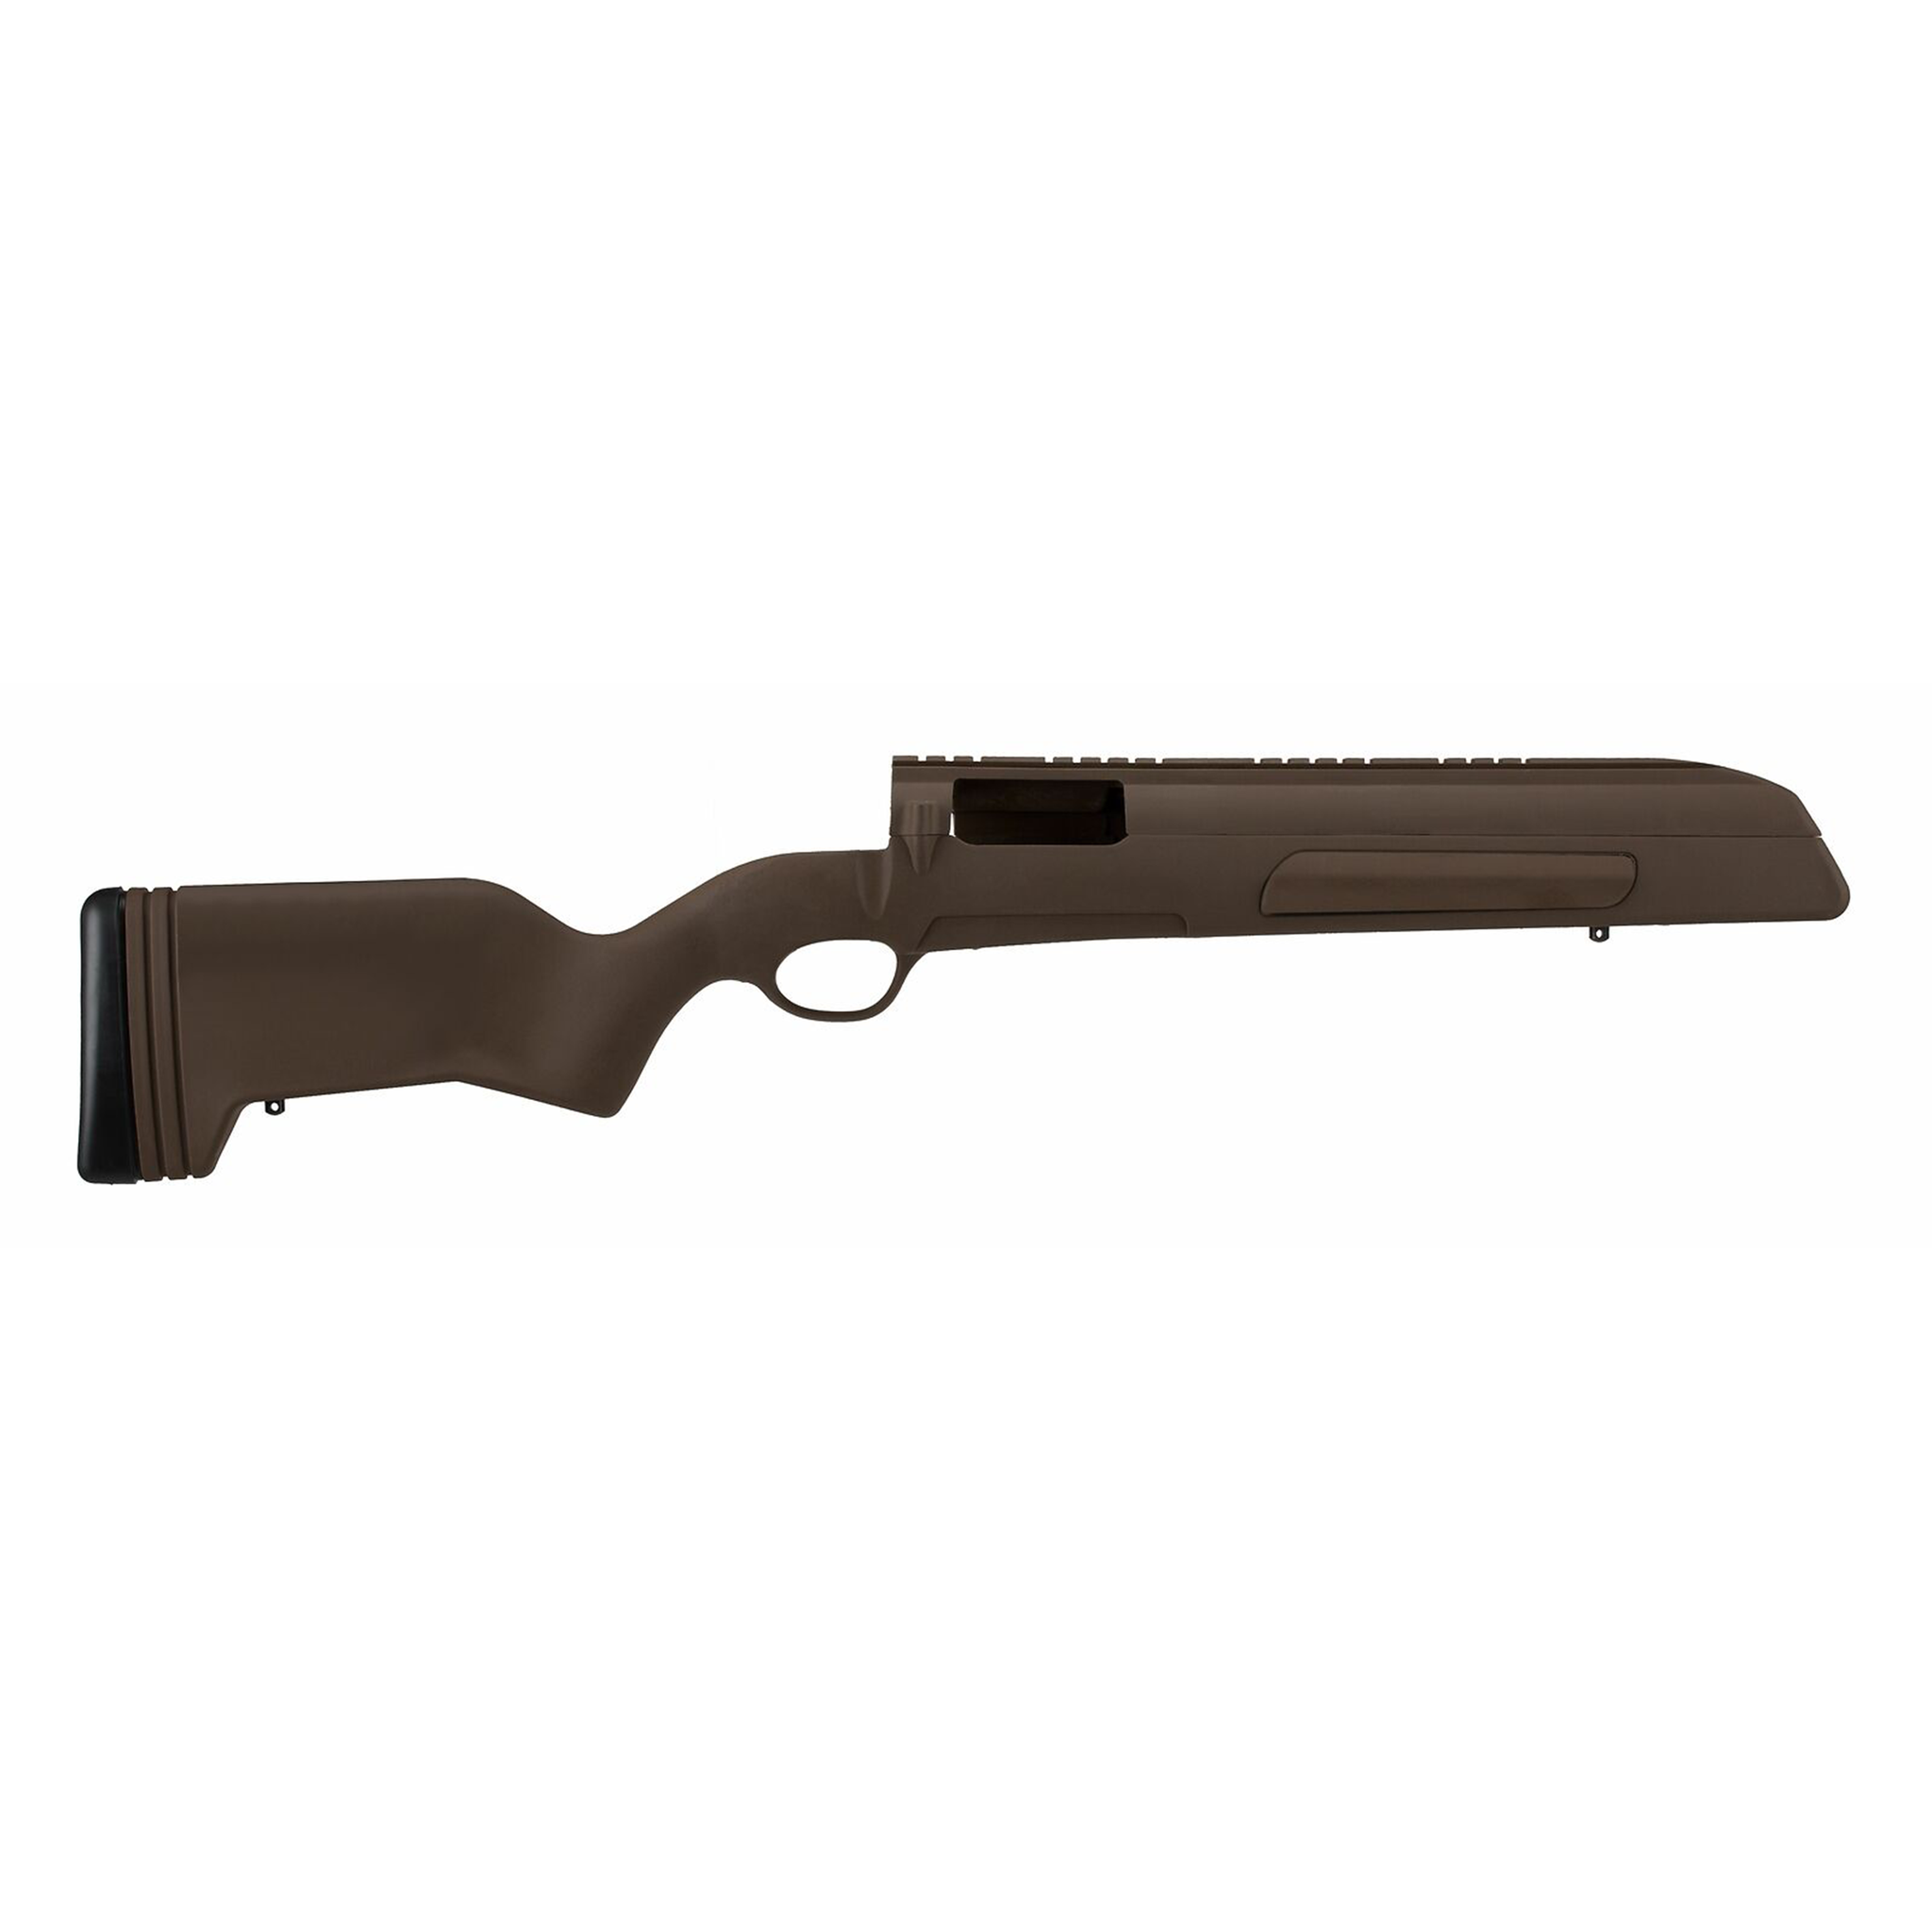 Advanced Technology International ATI Mauser 98 w/ Built-In Scope Mount & X Series Recoil Pad Woodland Brown